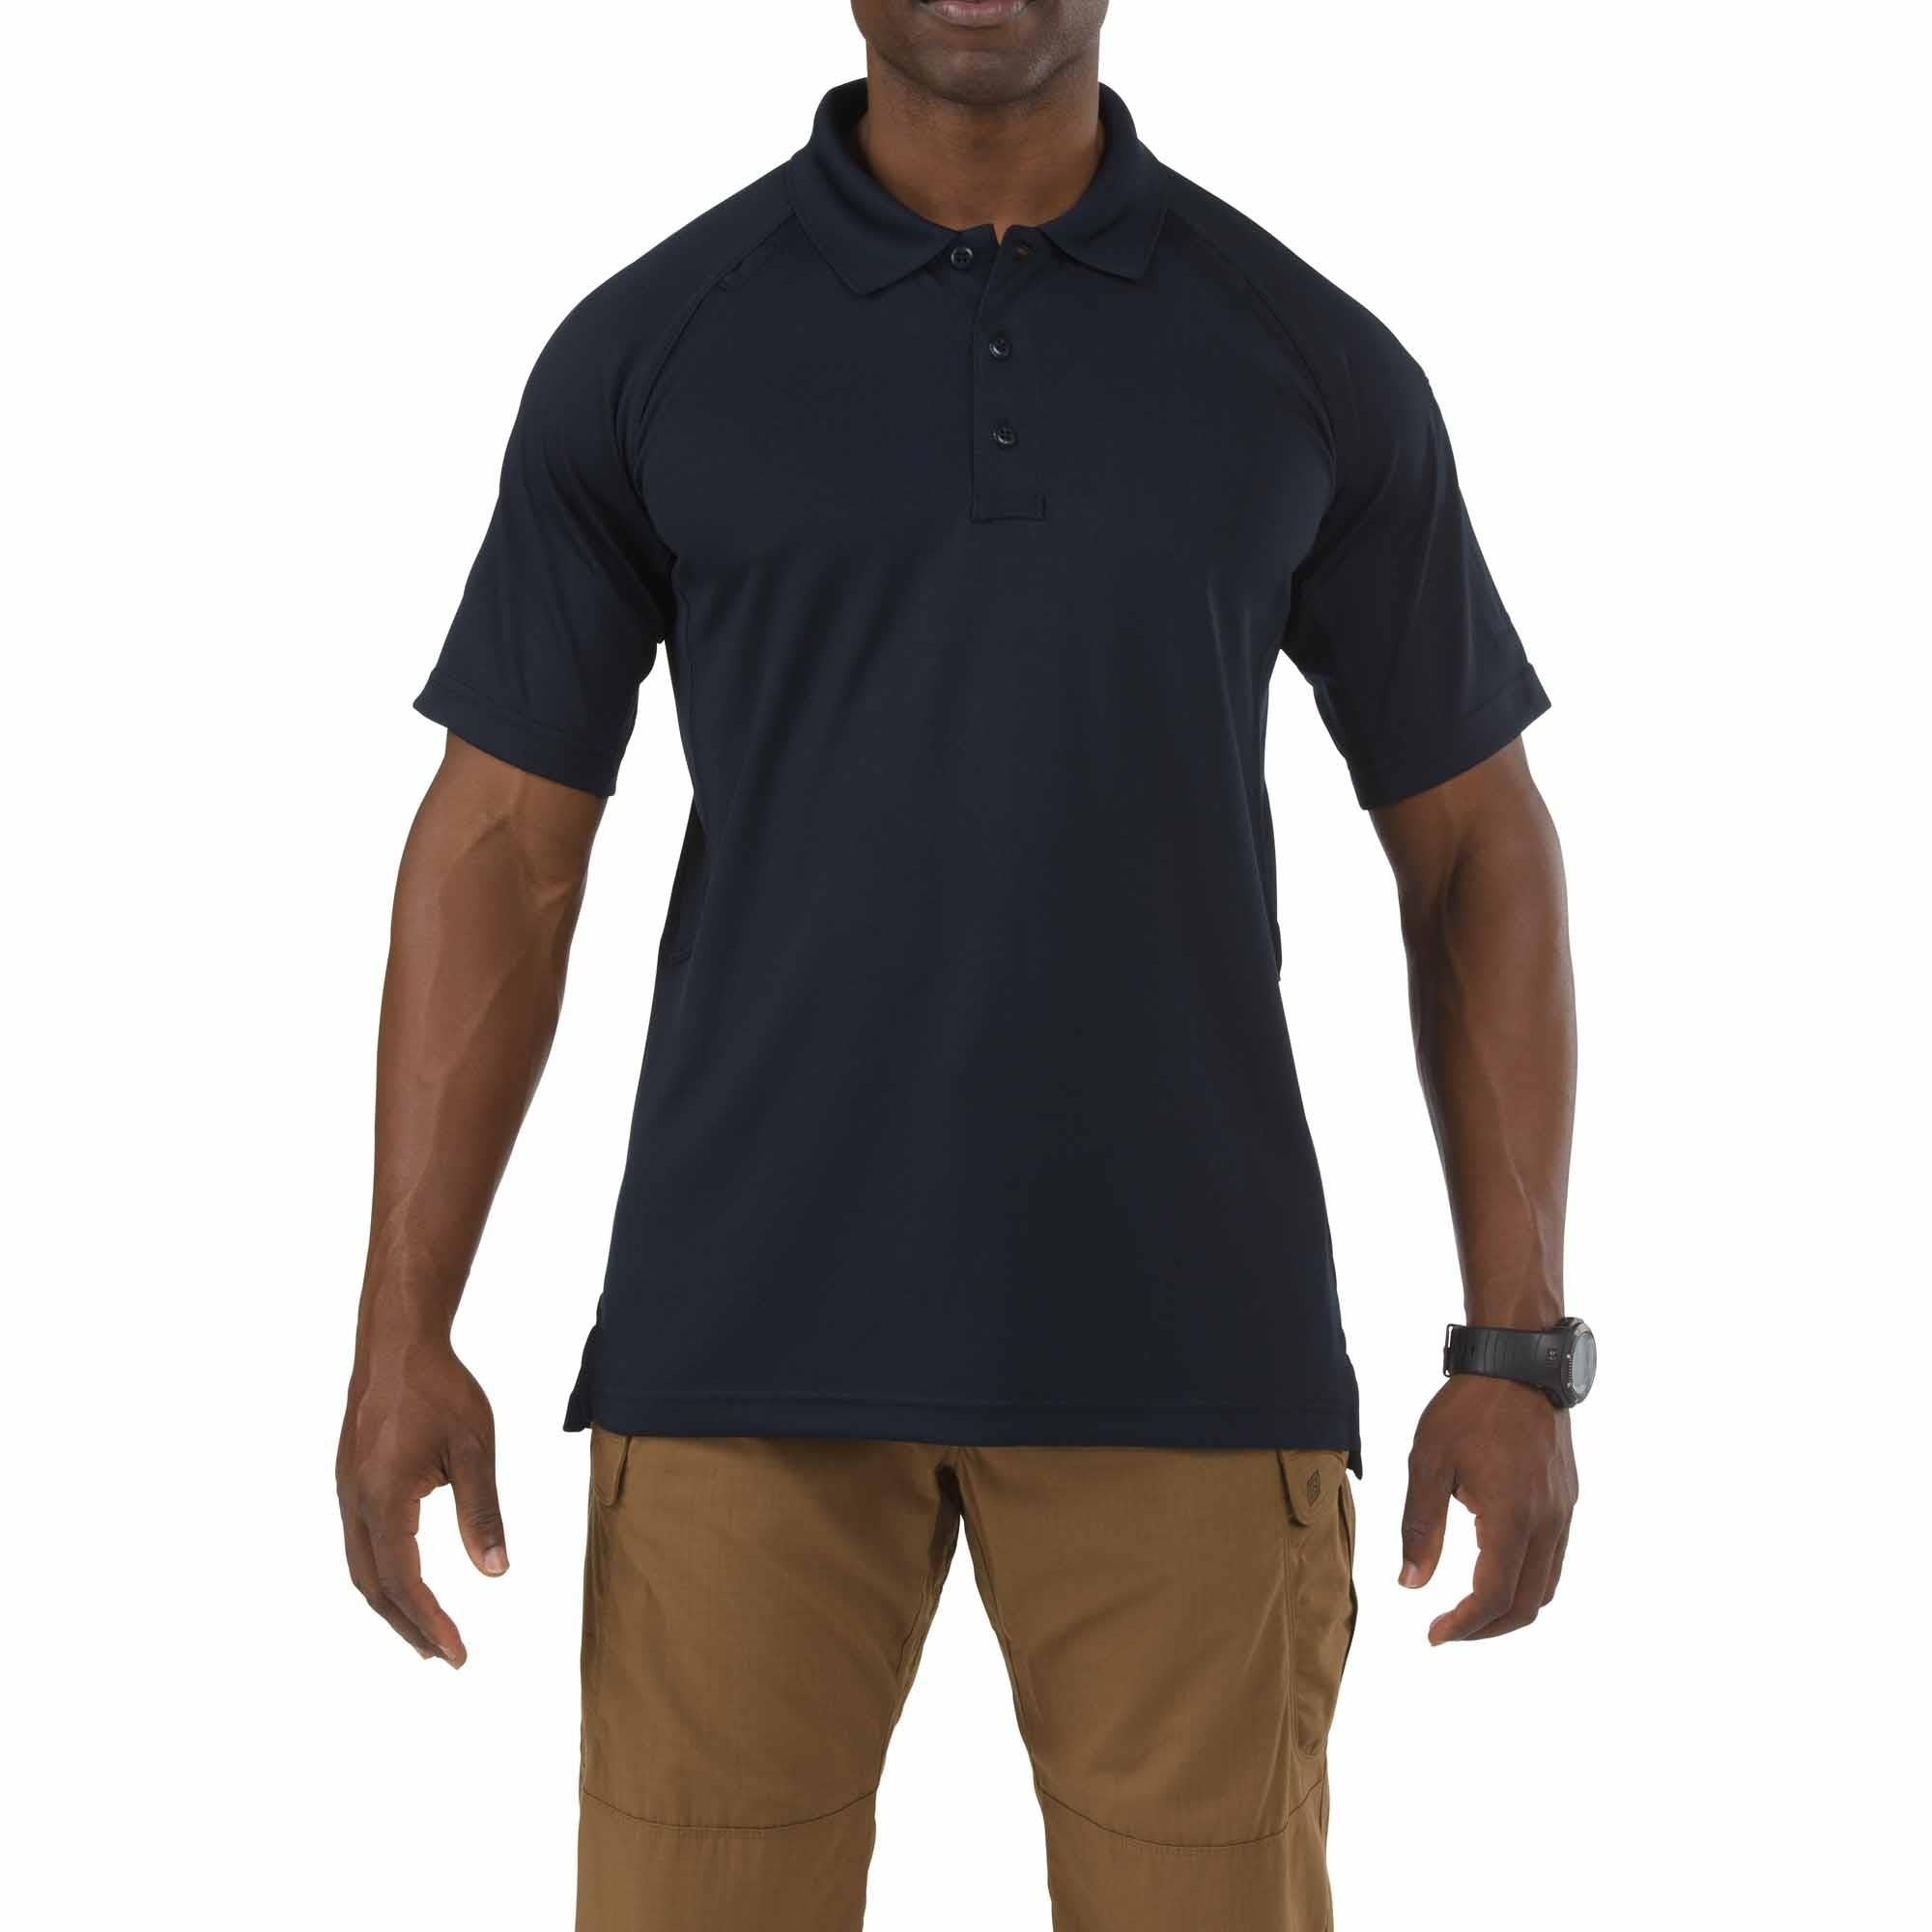 5.11 Men's Performance Polo Short Sleeve - Black, XX-Large by 5.11